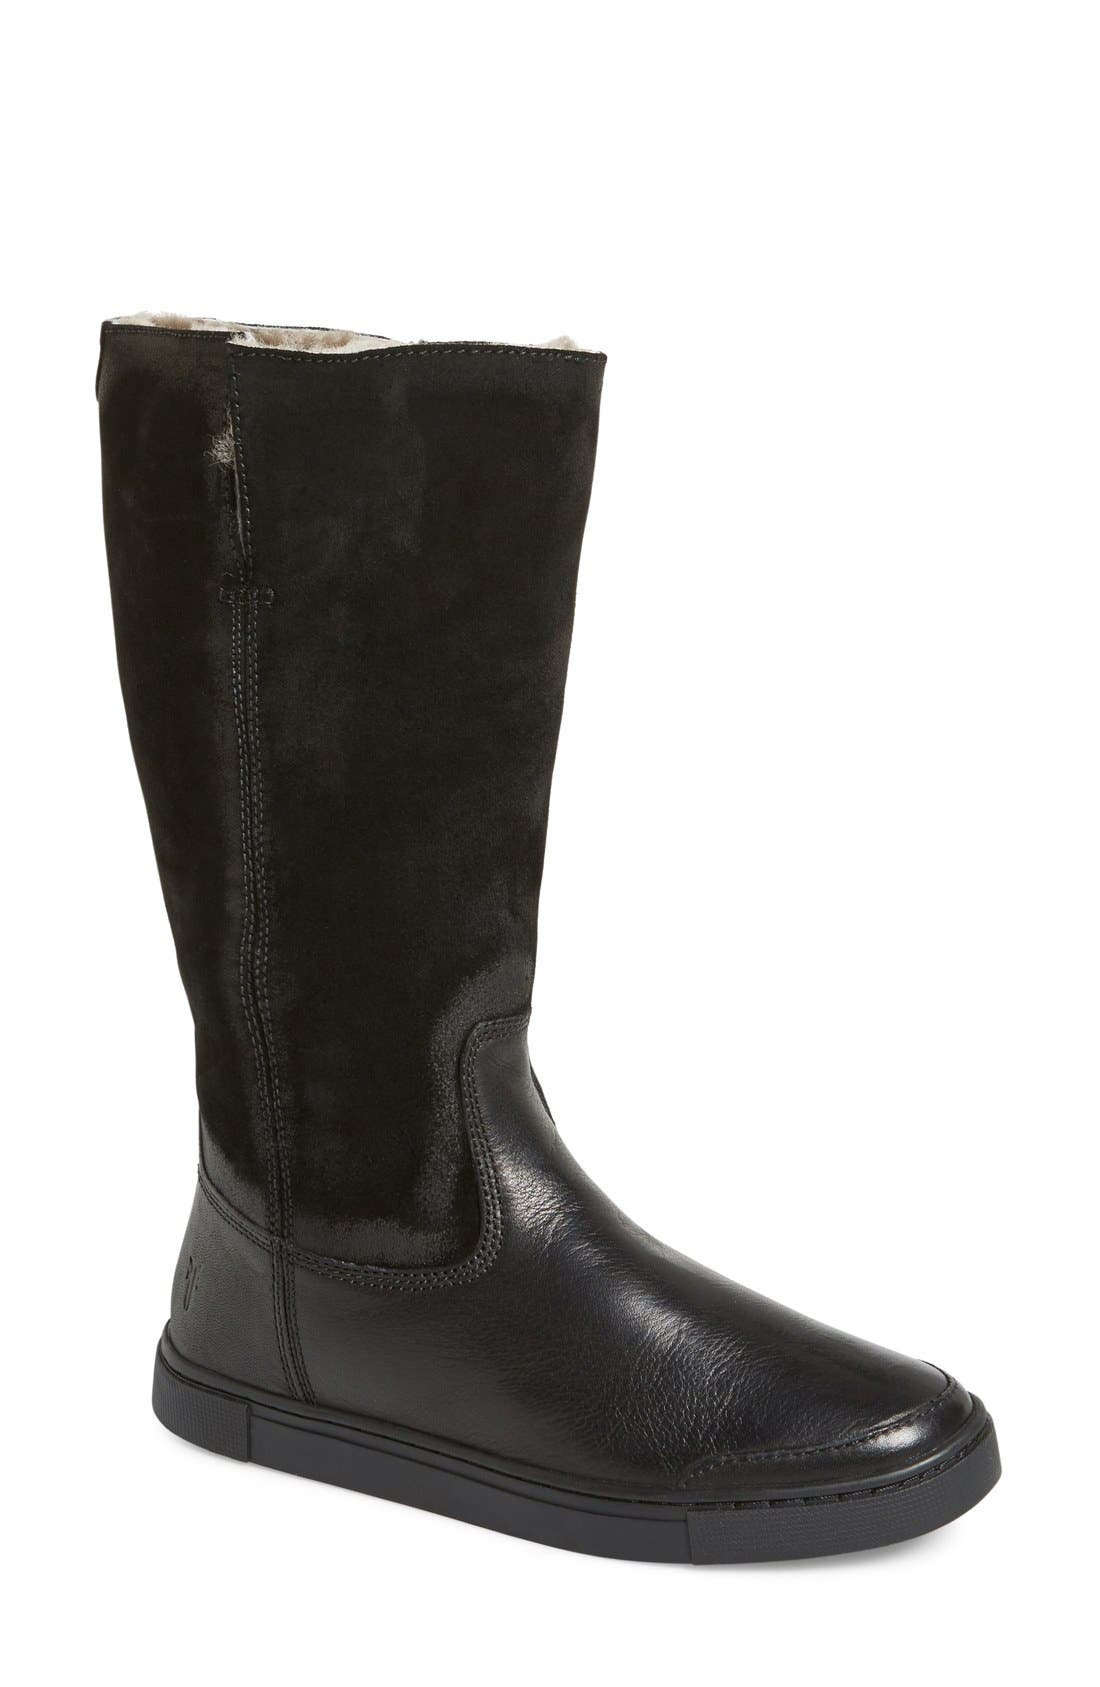 'Gemma' Tall Genuine Shearling Lined Boot, Main, color, 001